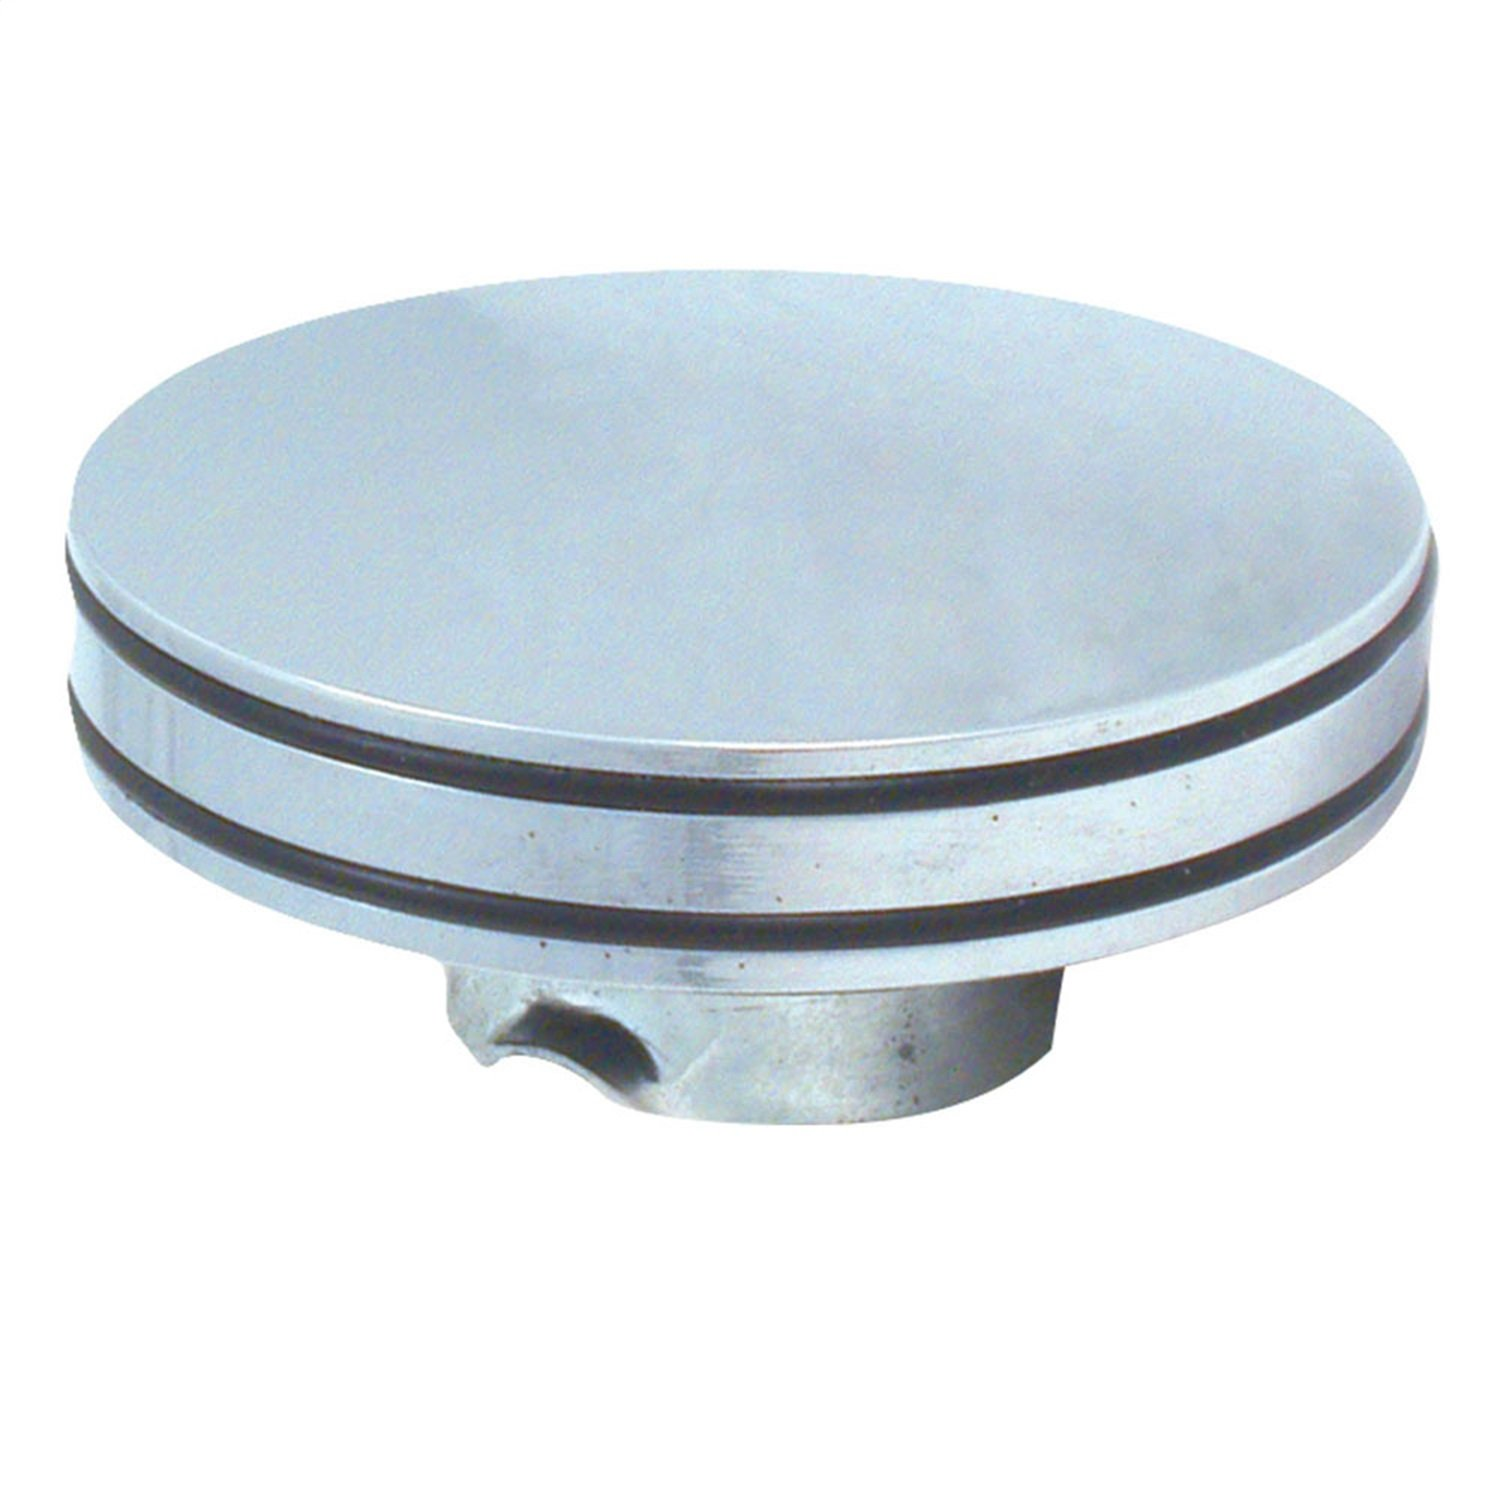 Spectre Performance 43105 Chrome O-Ring Twist Oil Cap SPE-43105